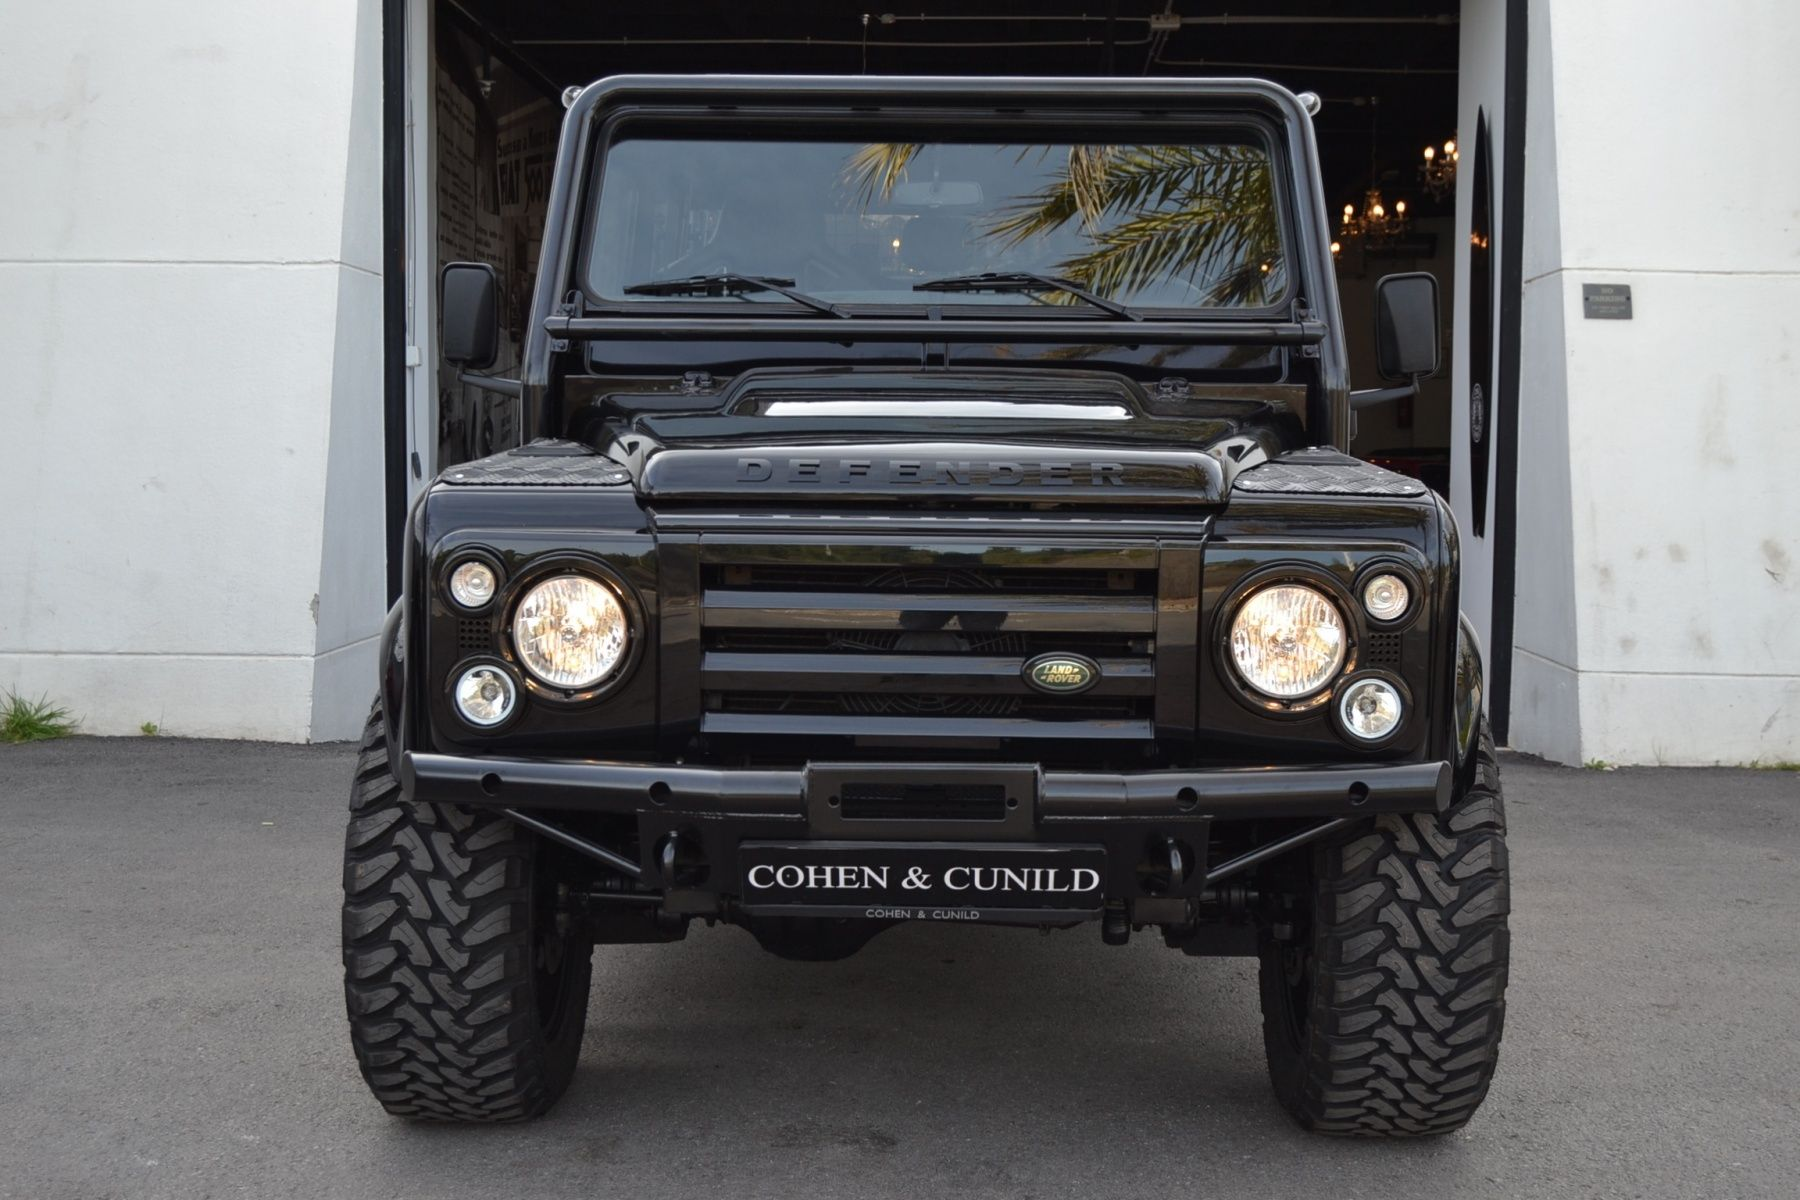 2010 Land Rover Defender Defender 110 Double Cab Pick Up All Blacks Version Classic Driver Market Land Rover Land Rover Defender Land Rover For Sale